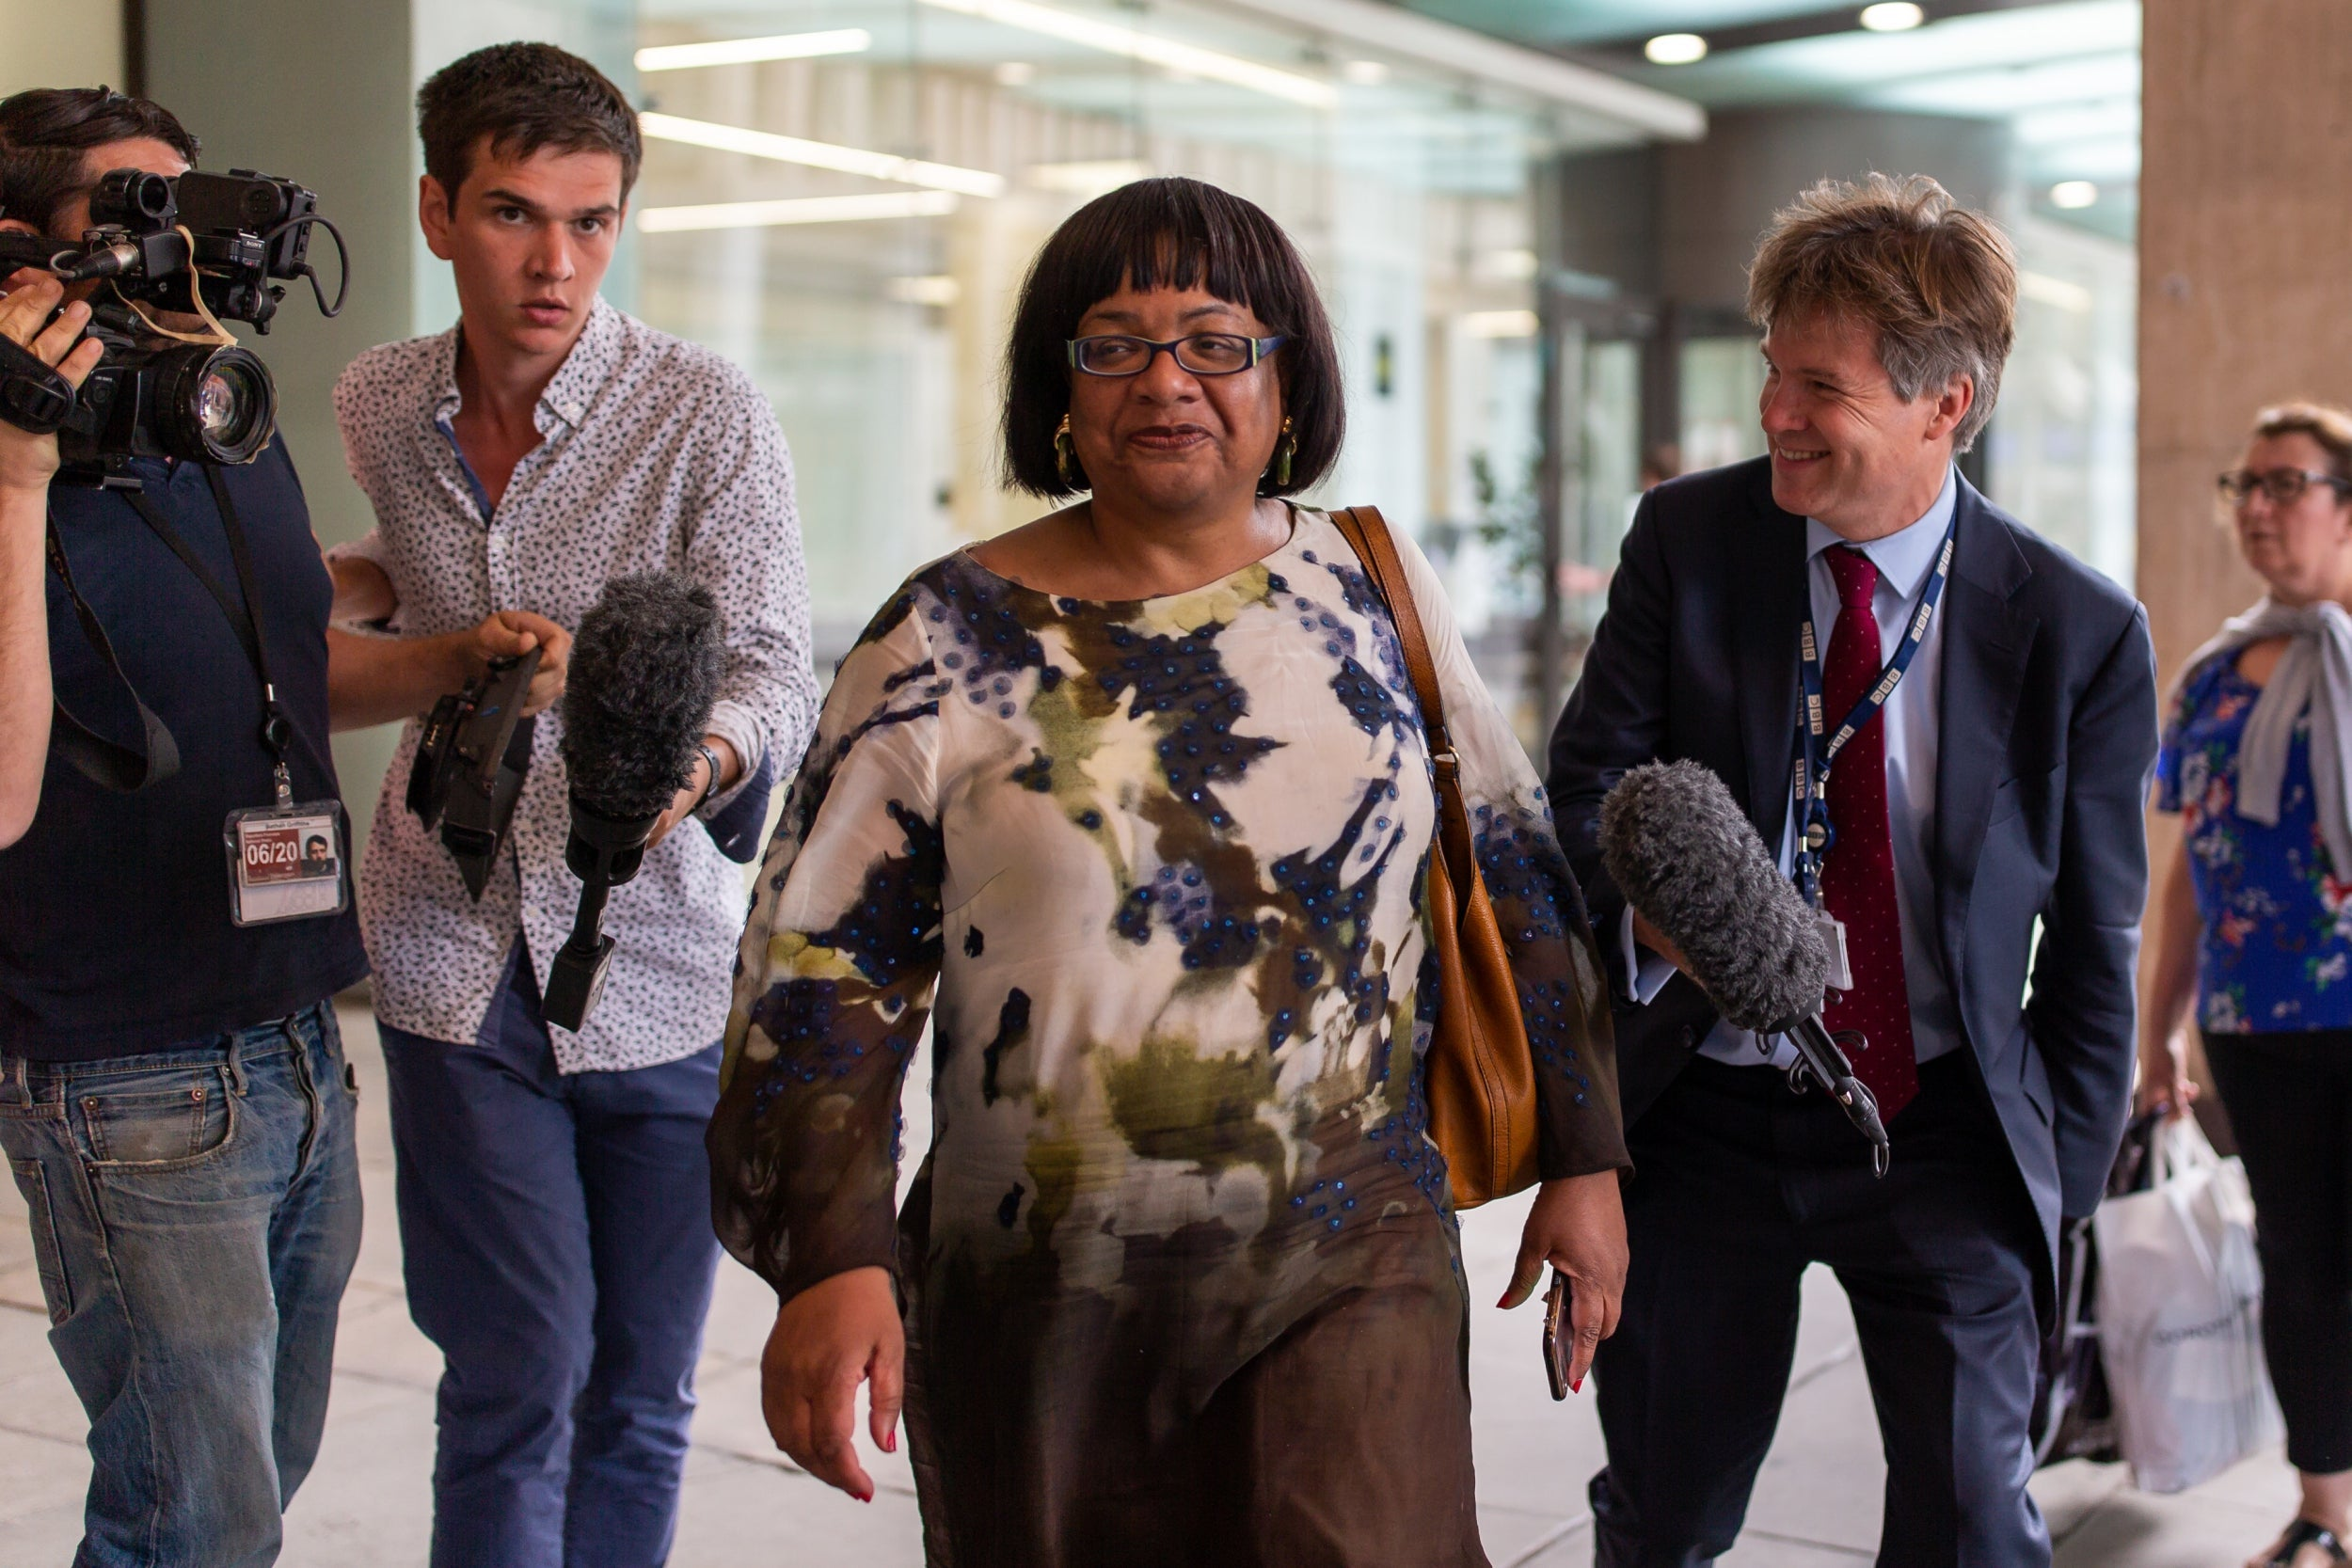 Diane Abbott - latest news, breaking stories and comment